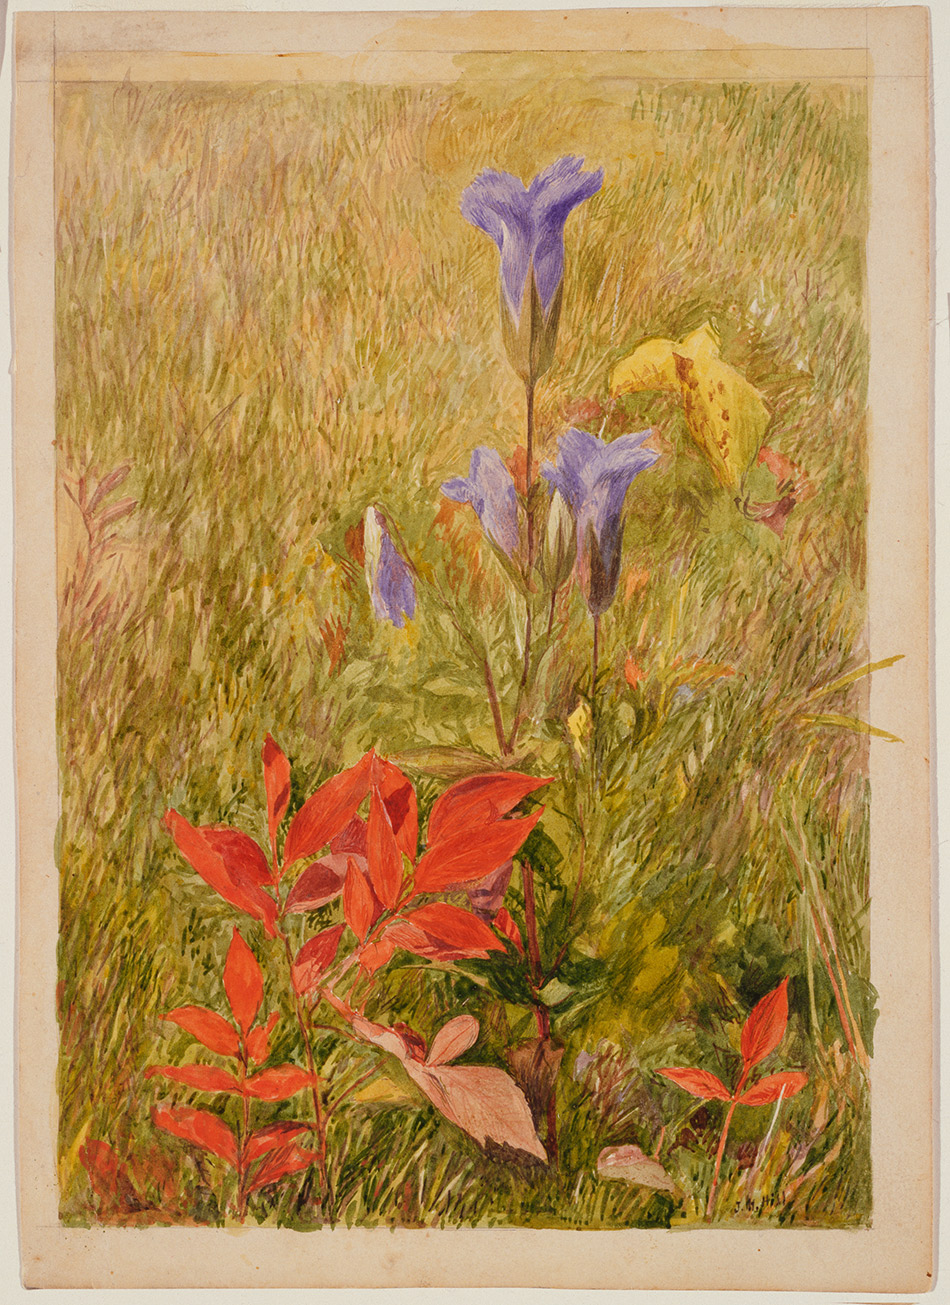 John-Henry-Hill_Fringed Gentians_c. 1867_4104-008_Brooklyn Museum_ New York_950w